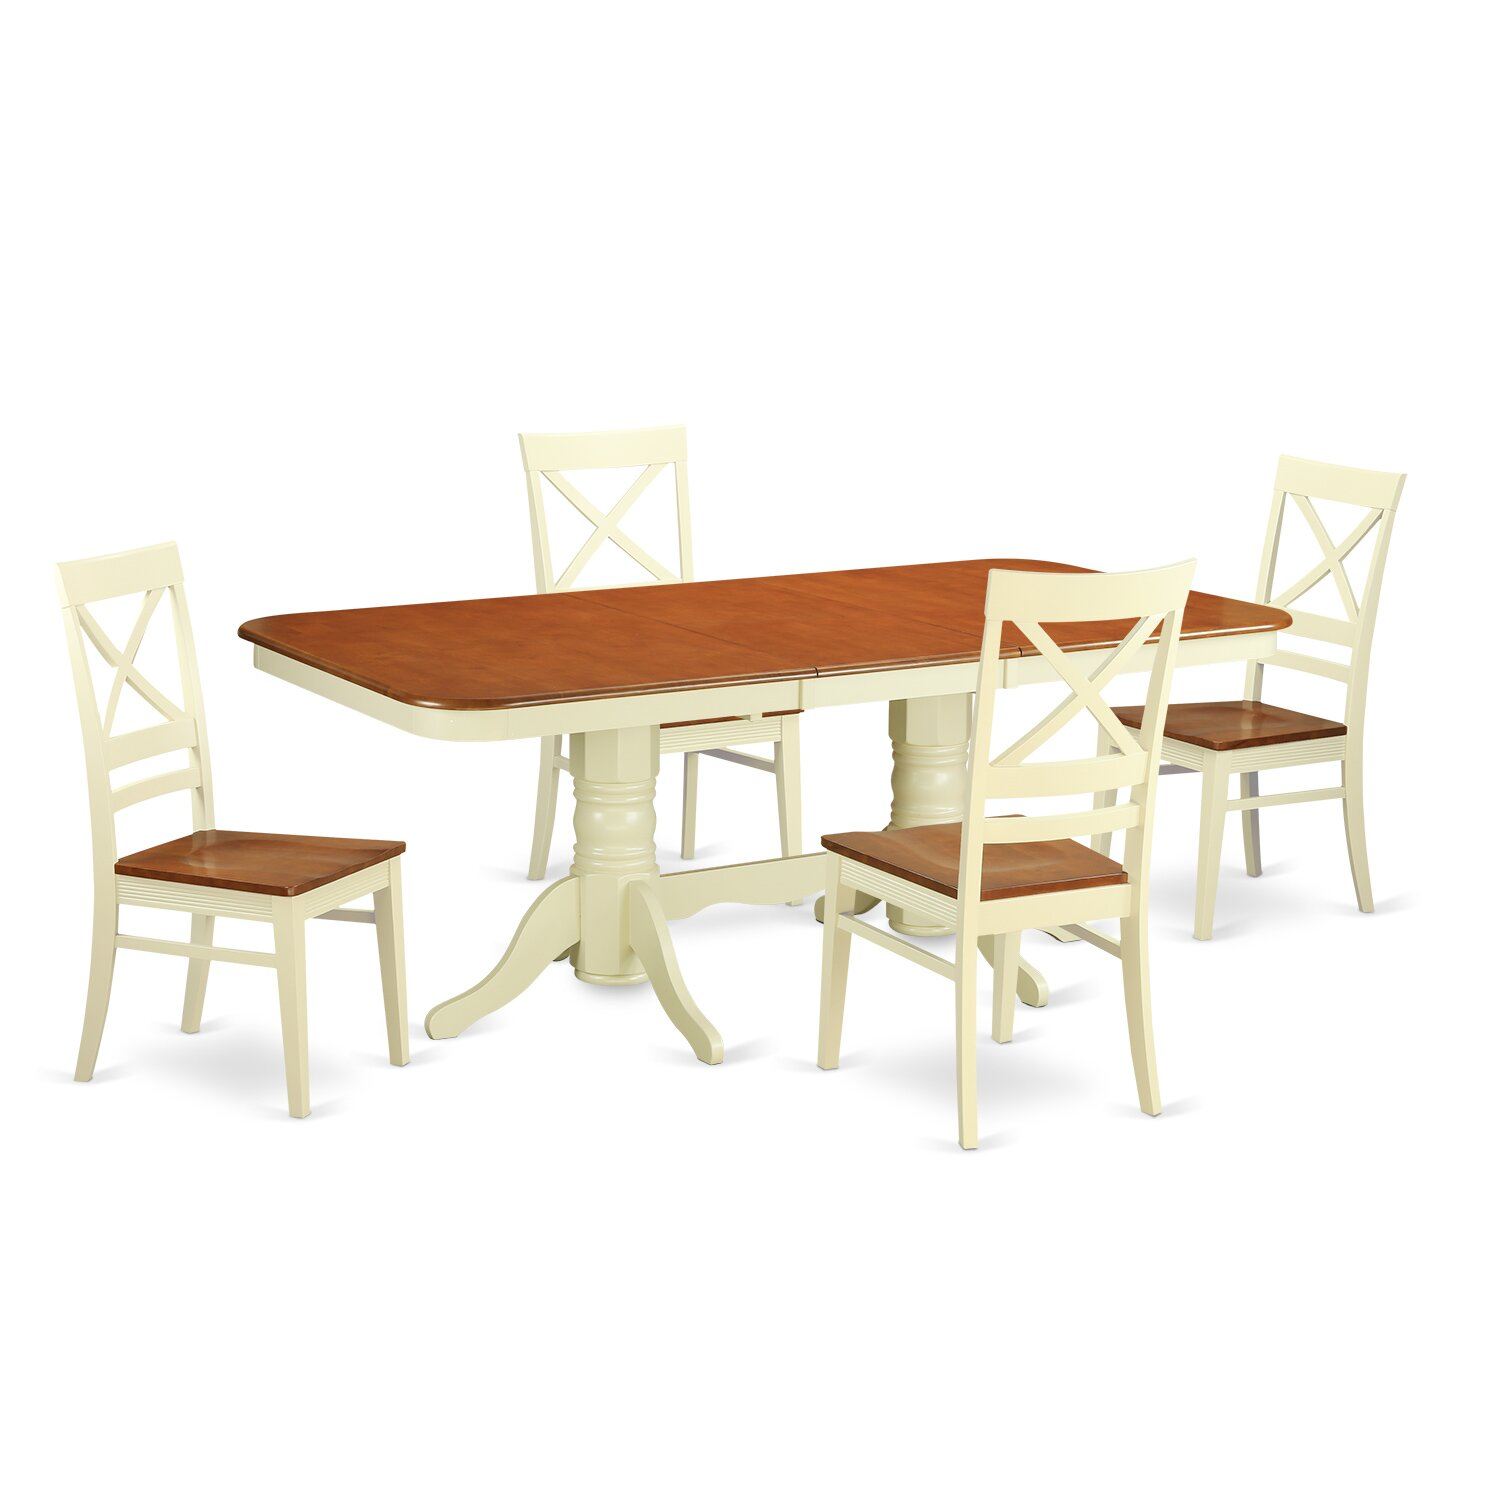 Wooden importers napoleon 5 piece dining set wayfair for Kitchen dining table chairs